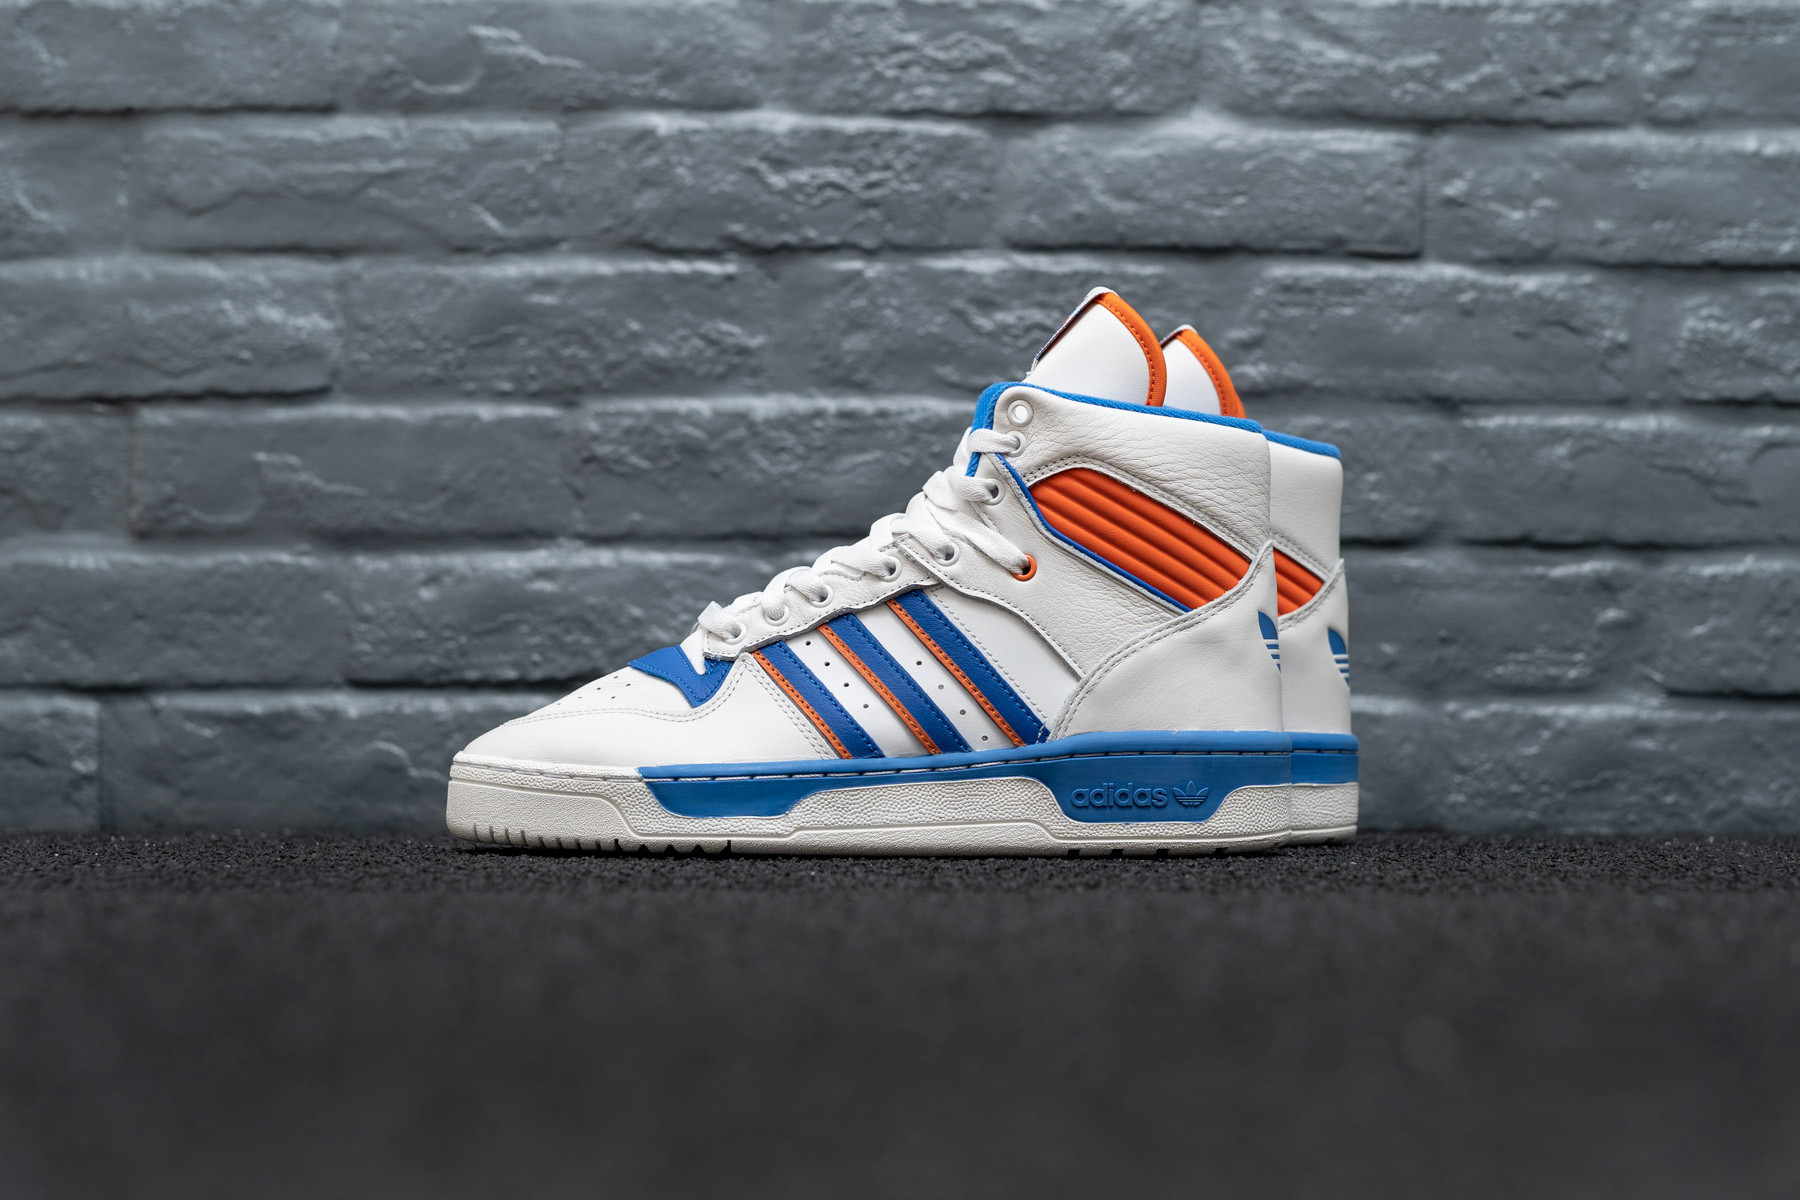 Adidas Rivalry Sneaker No